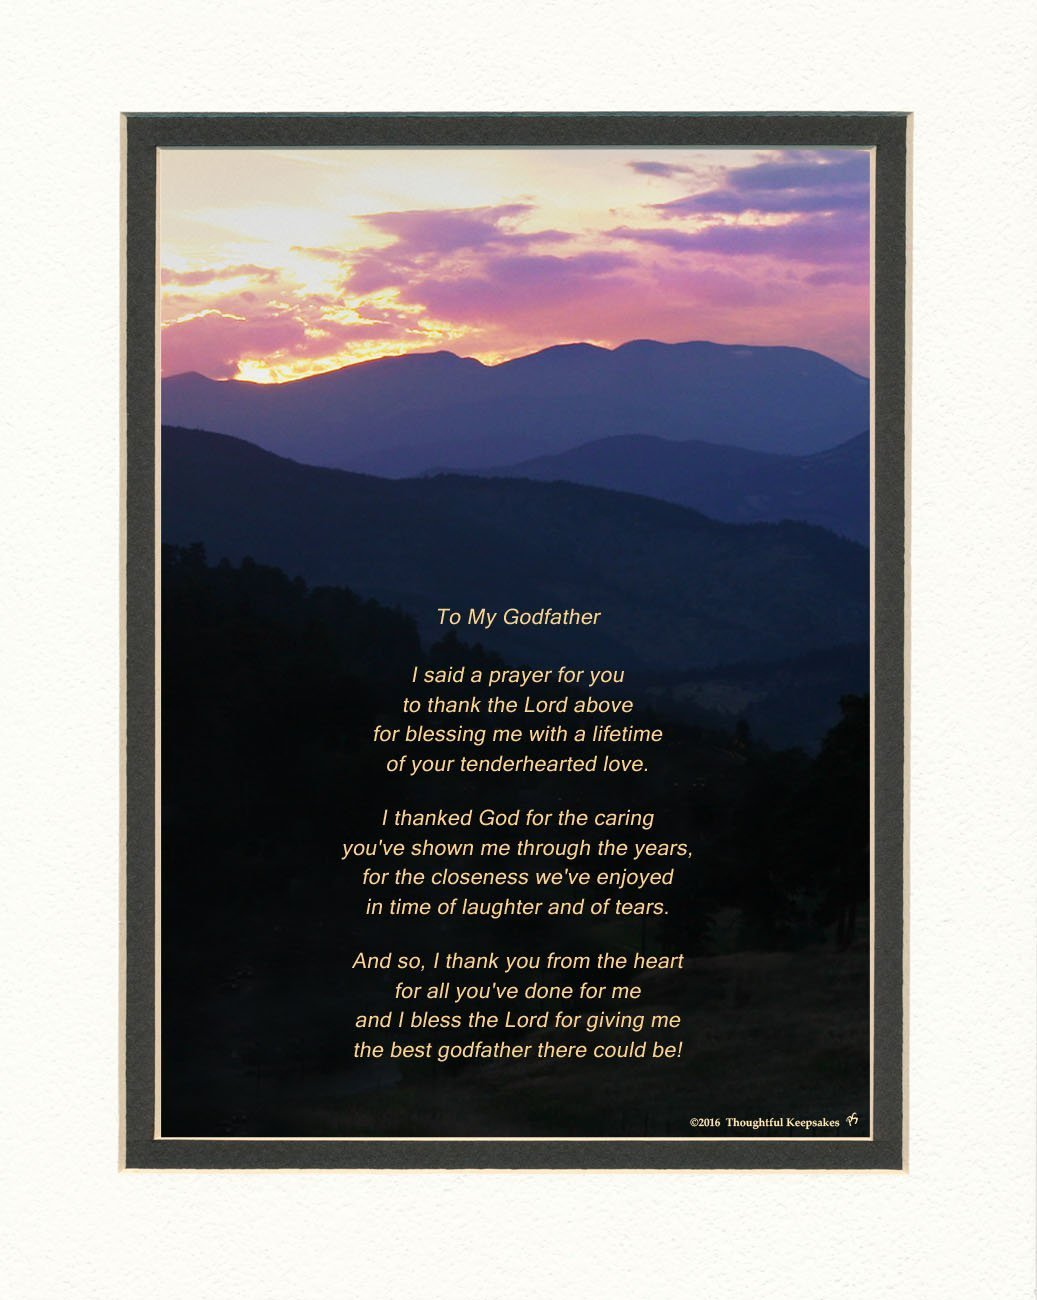 Godfather Gift with Thank You Prayer for Best Godfather Poem. Mts Sunset Photo, 8x10 Double Matted. Special Birthday, for Godfather